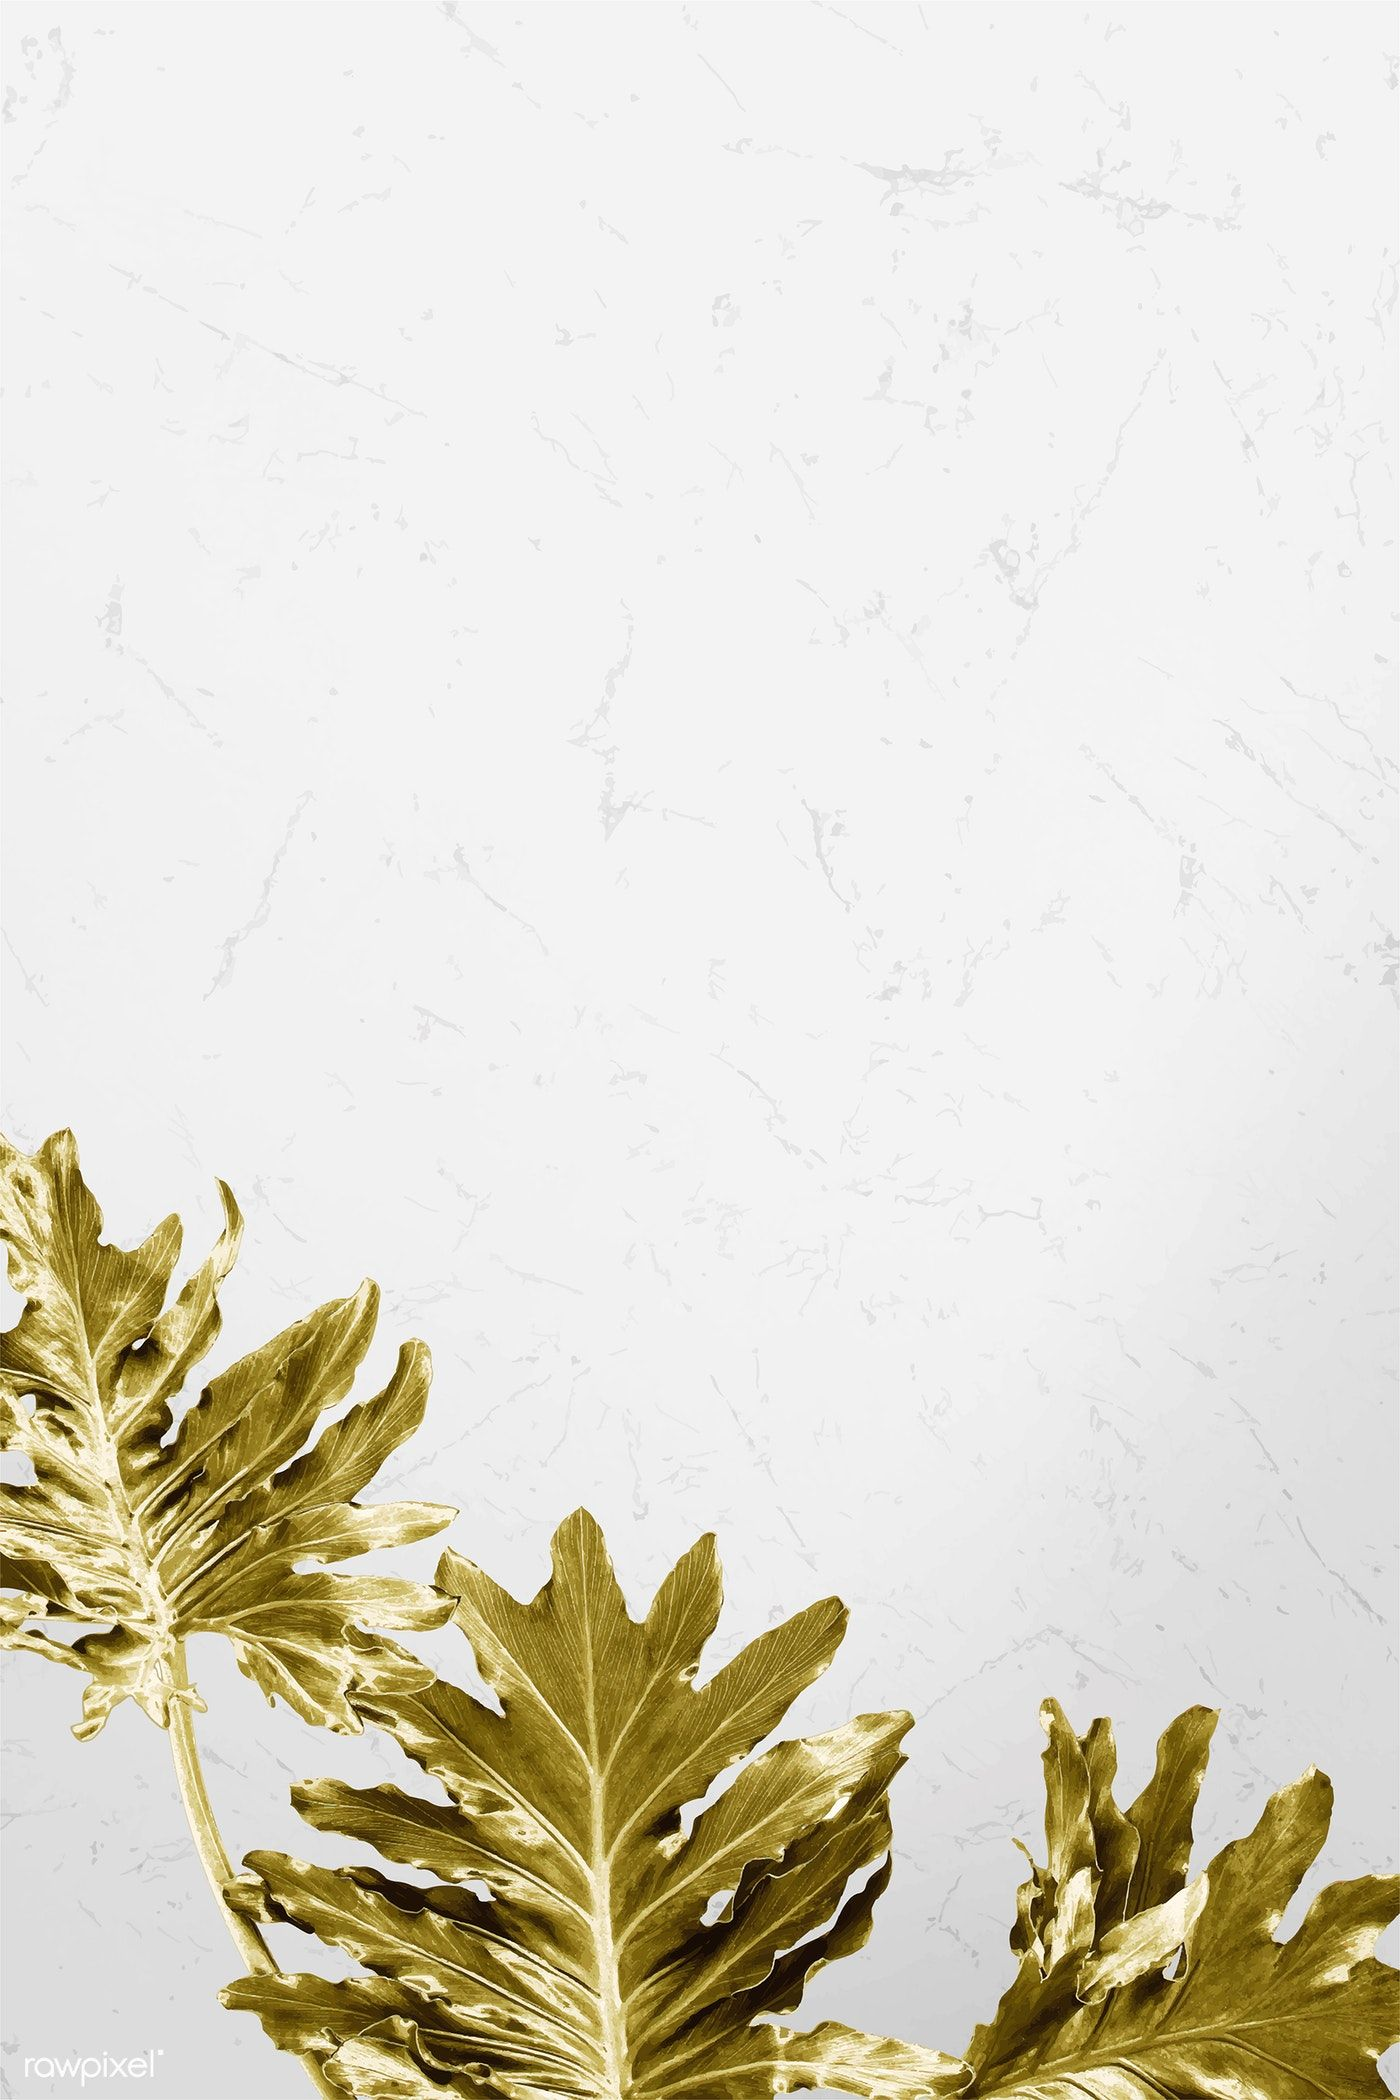 Download Premium Vector Of Gold Philodendron Xanadu Leaves On White Marble White Marble Background Philodendron Marble Background